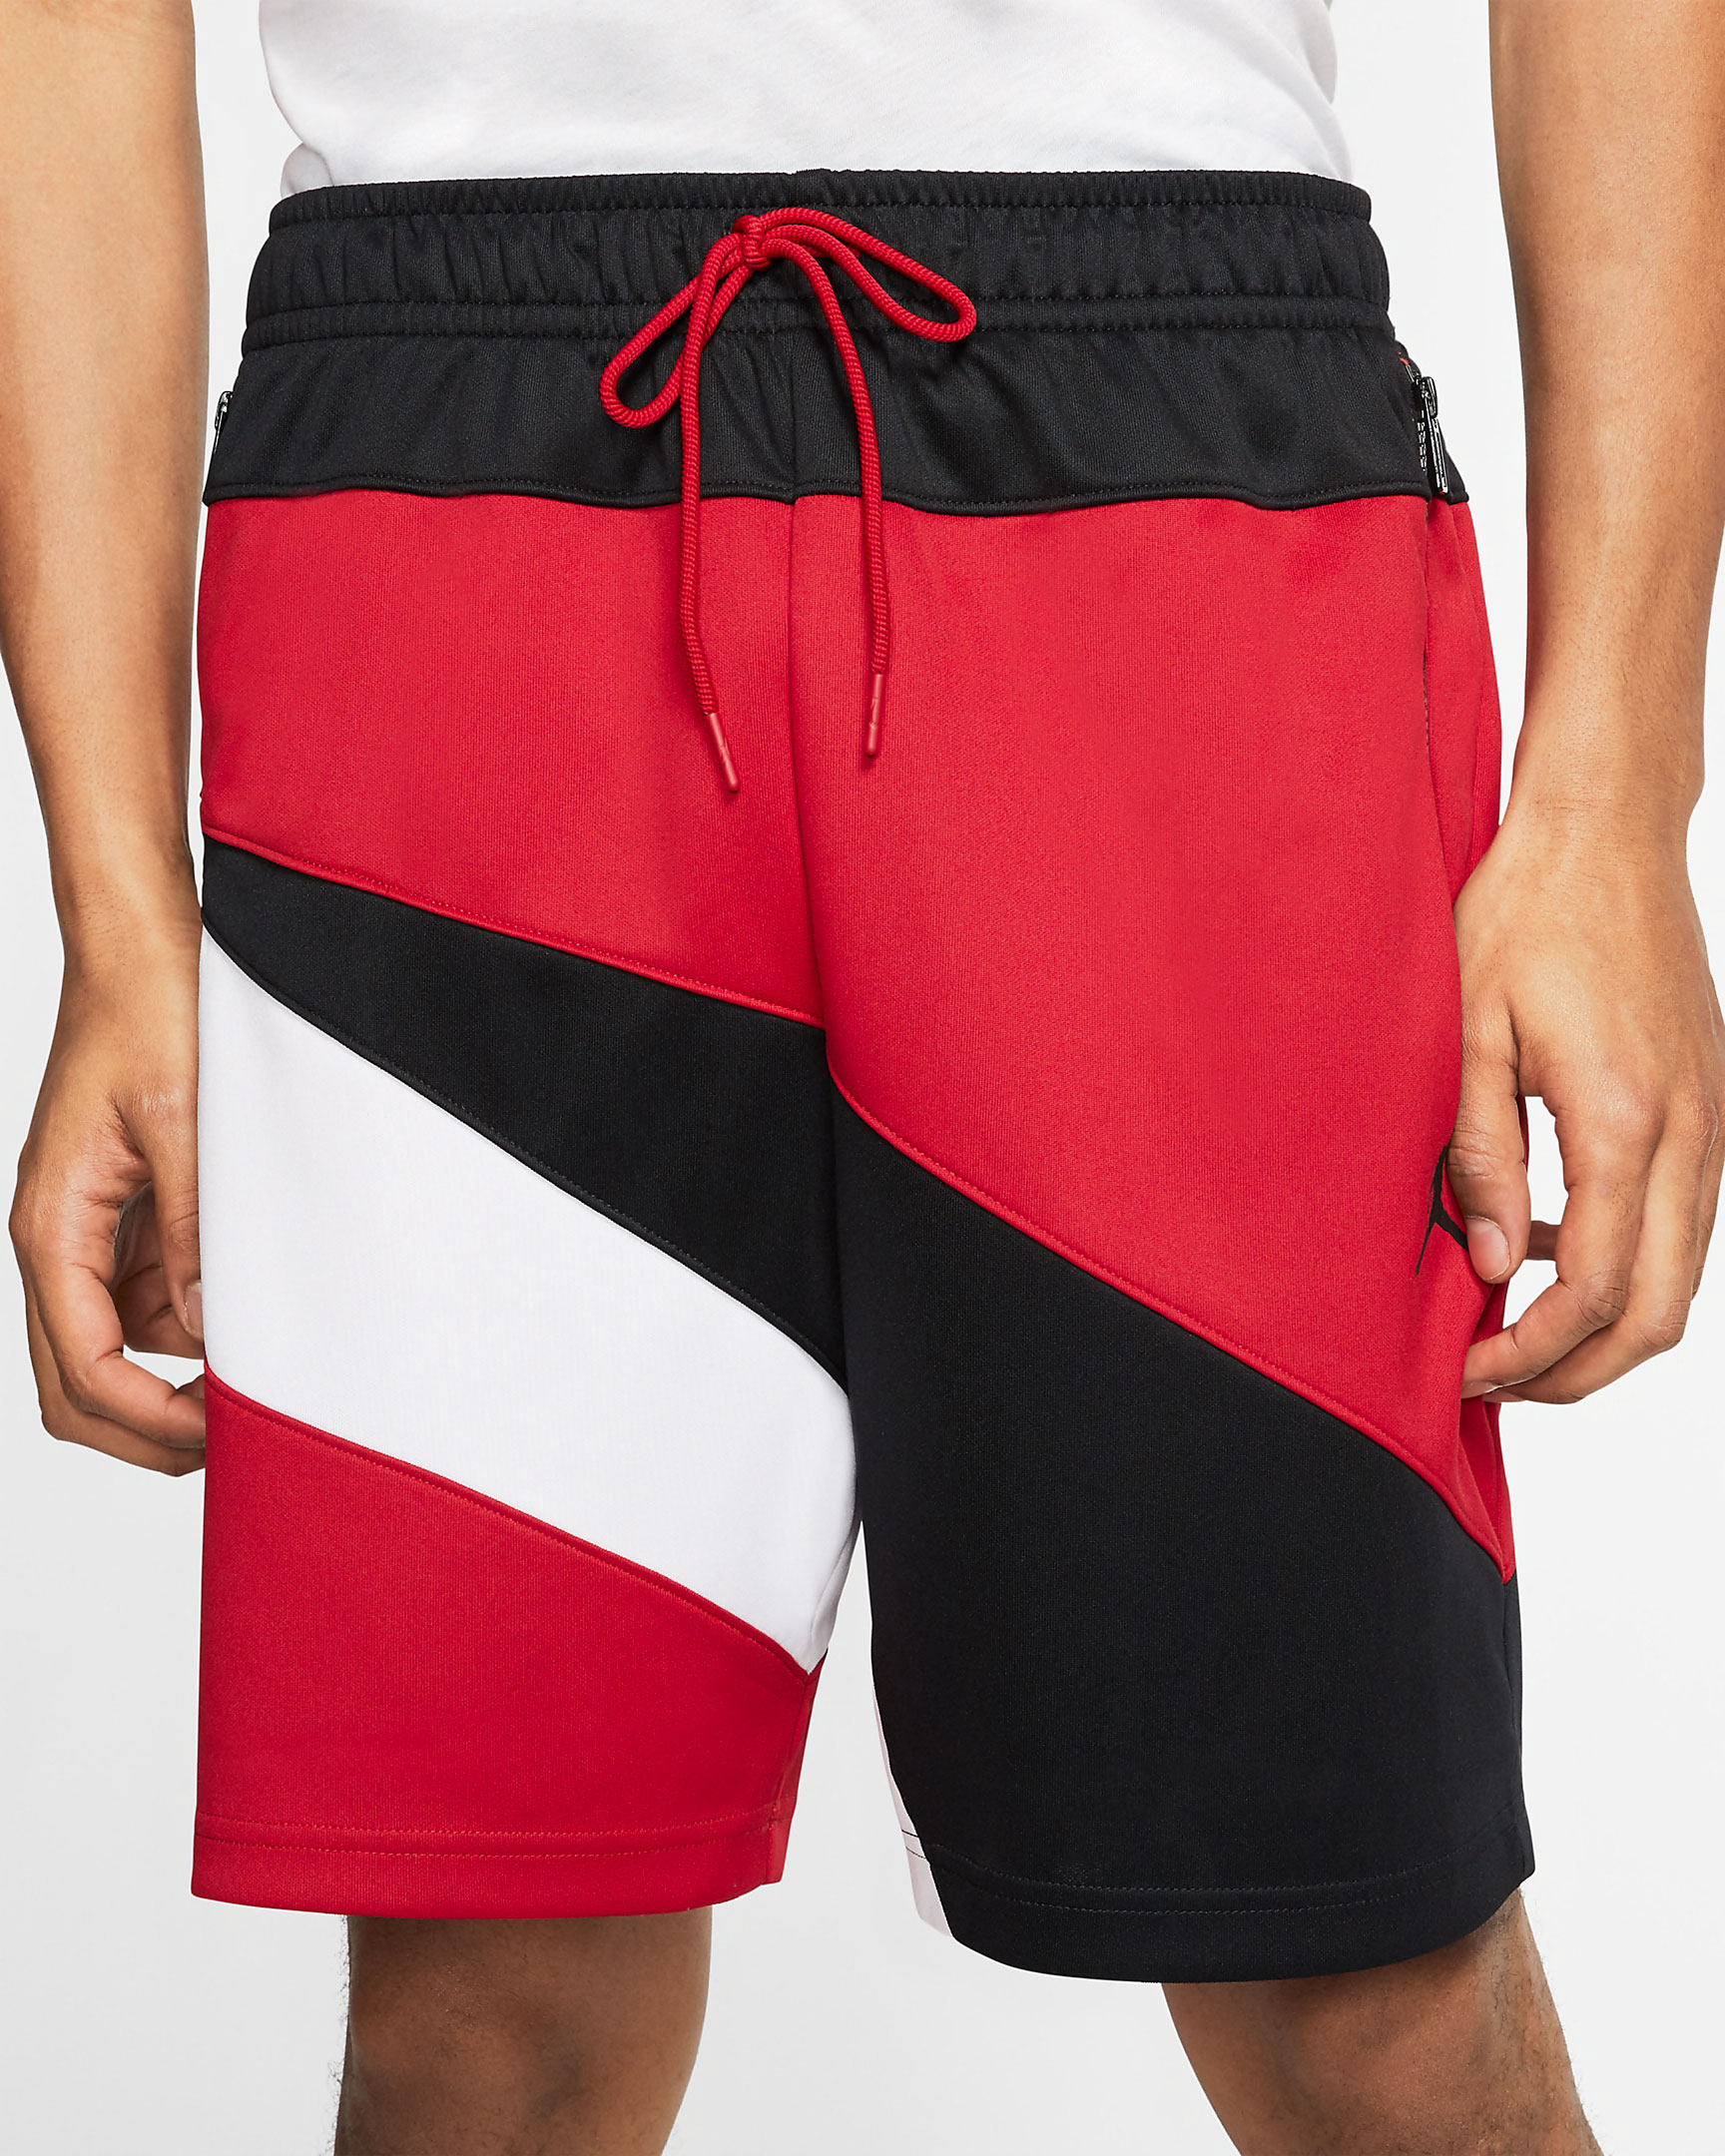 jordan-jumpman-wave-shorts-red-black-white-1